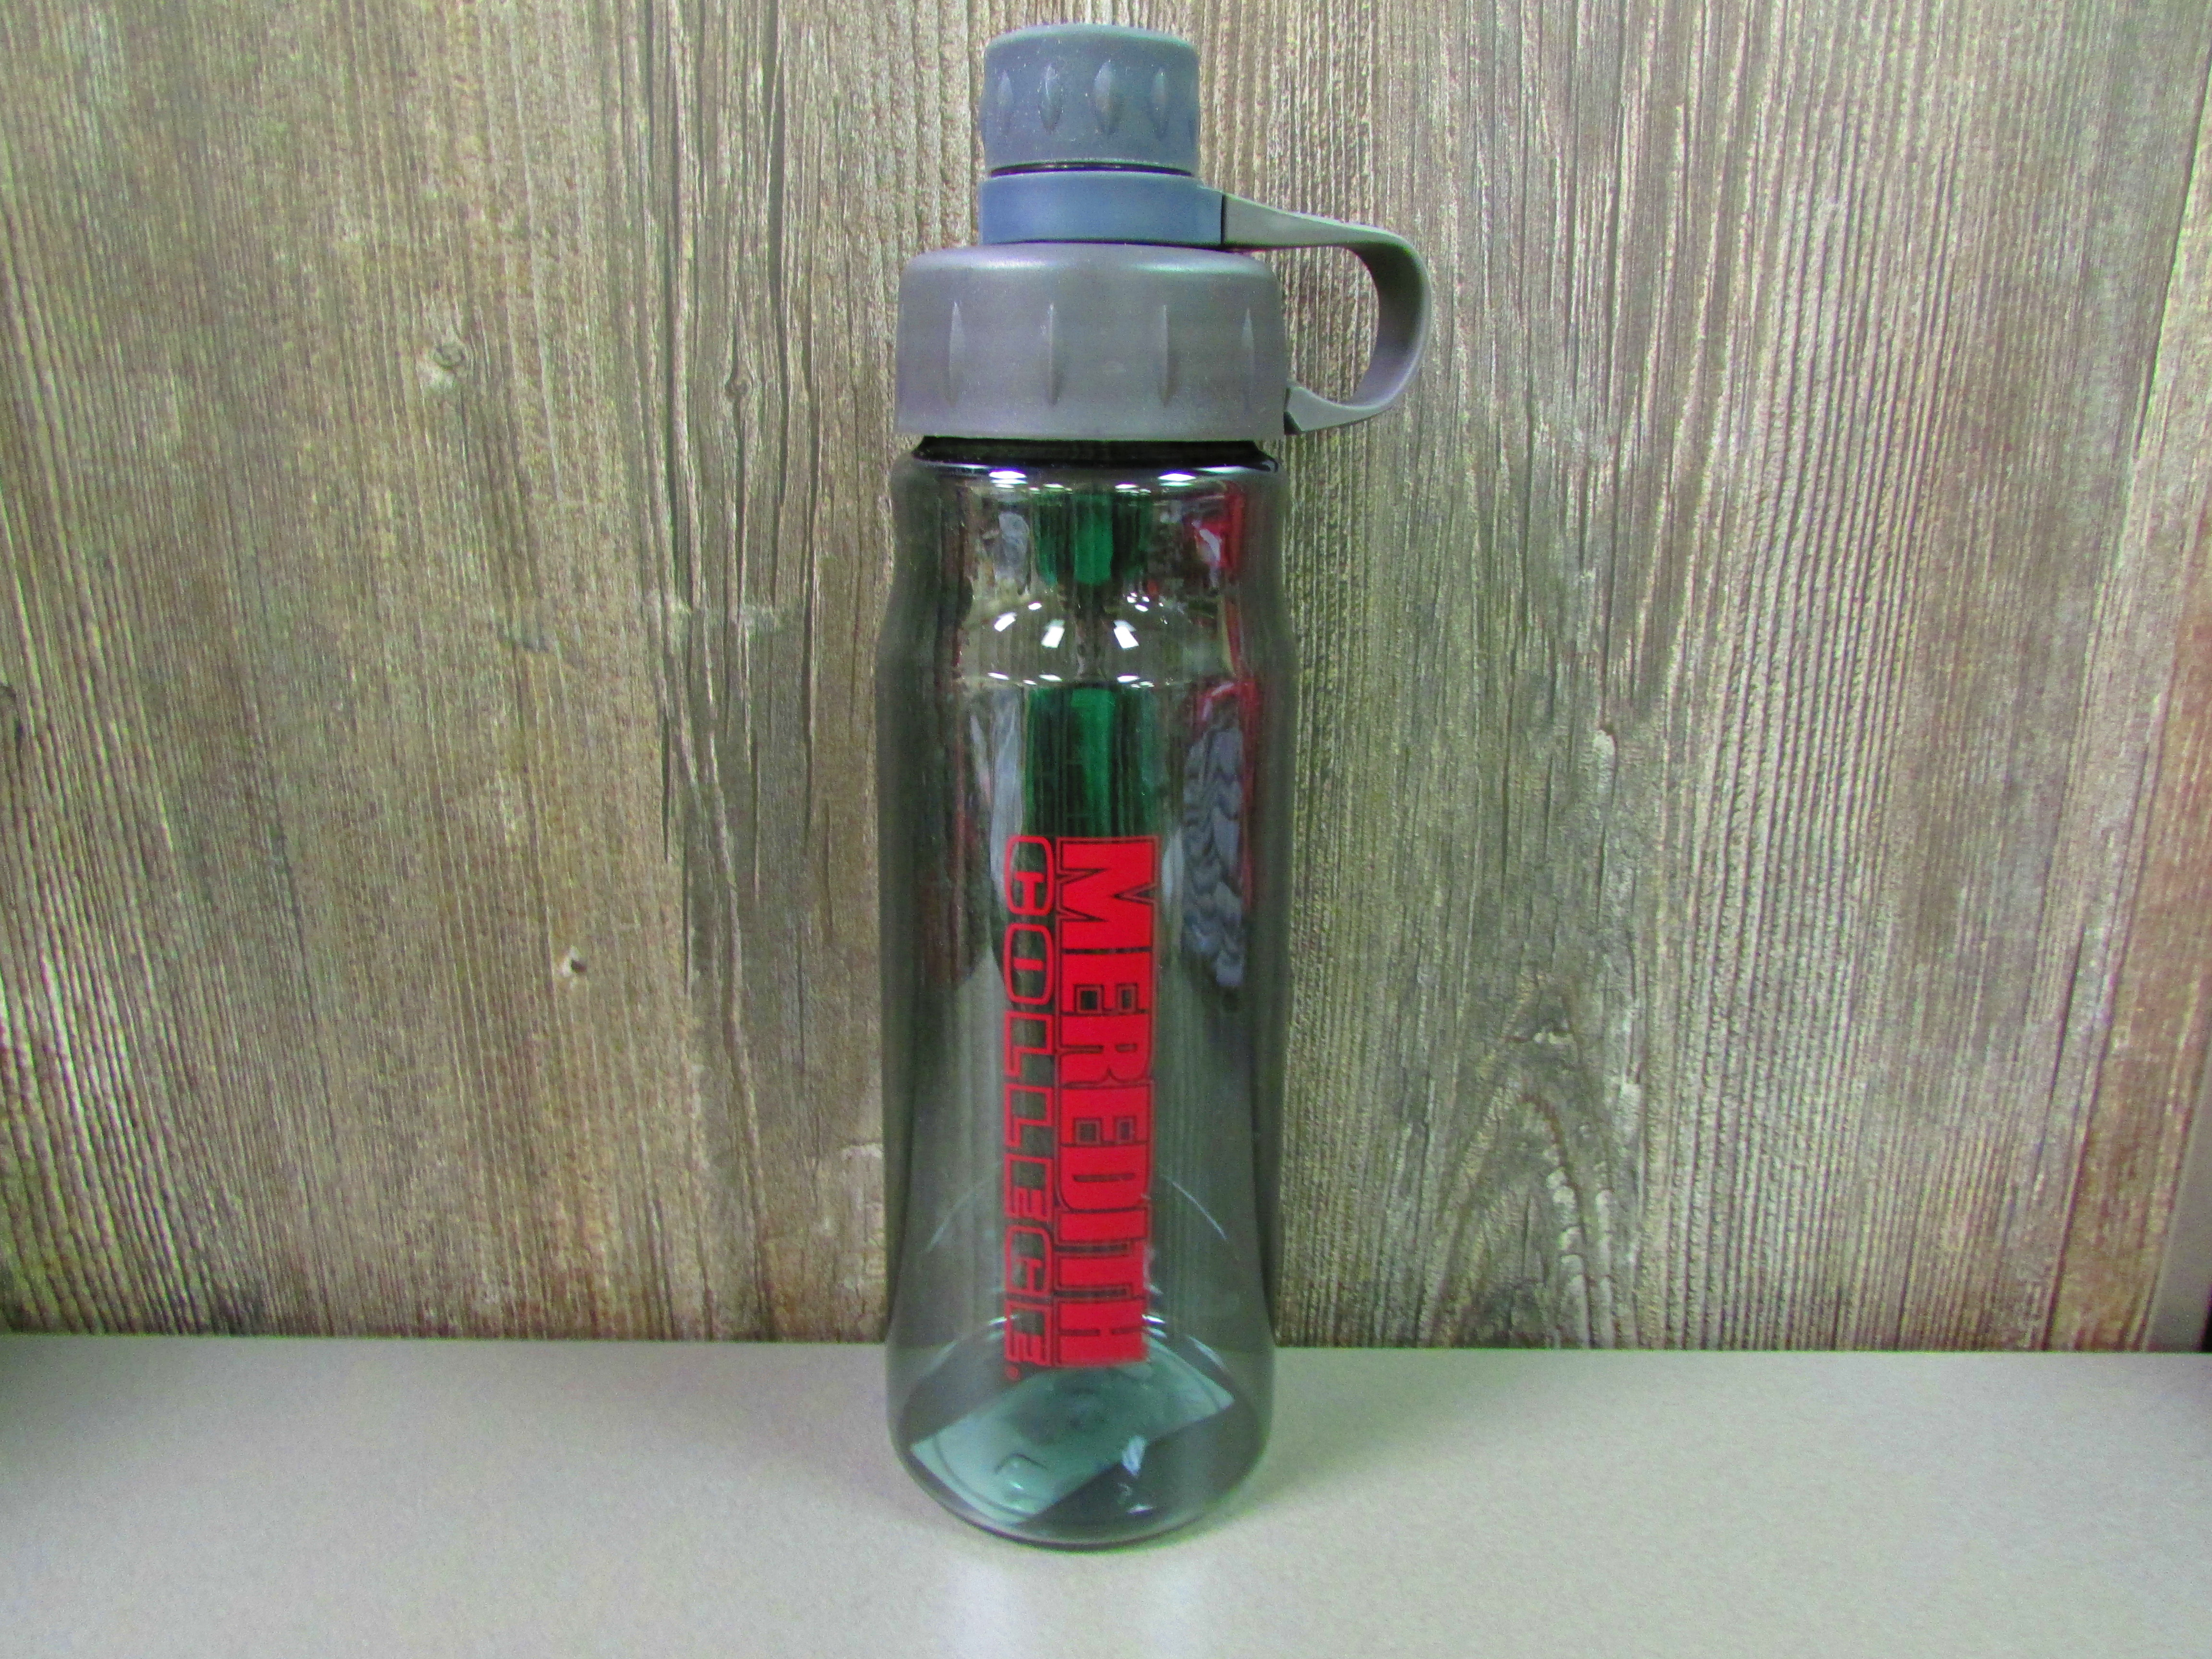 Image for the Water Bottle, Meredith College, Maroon FN logo, 28 oz. product